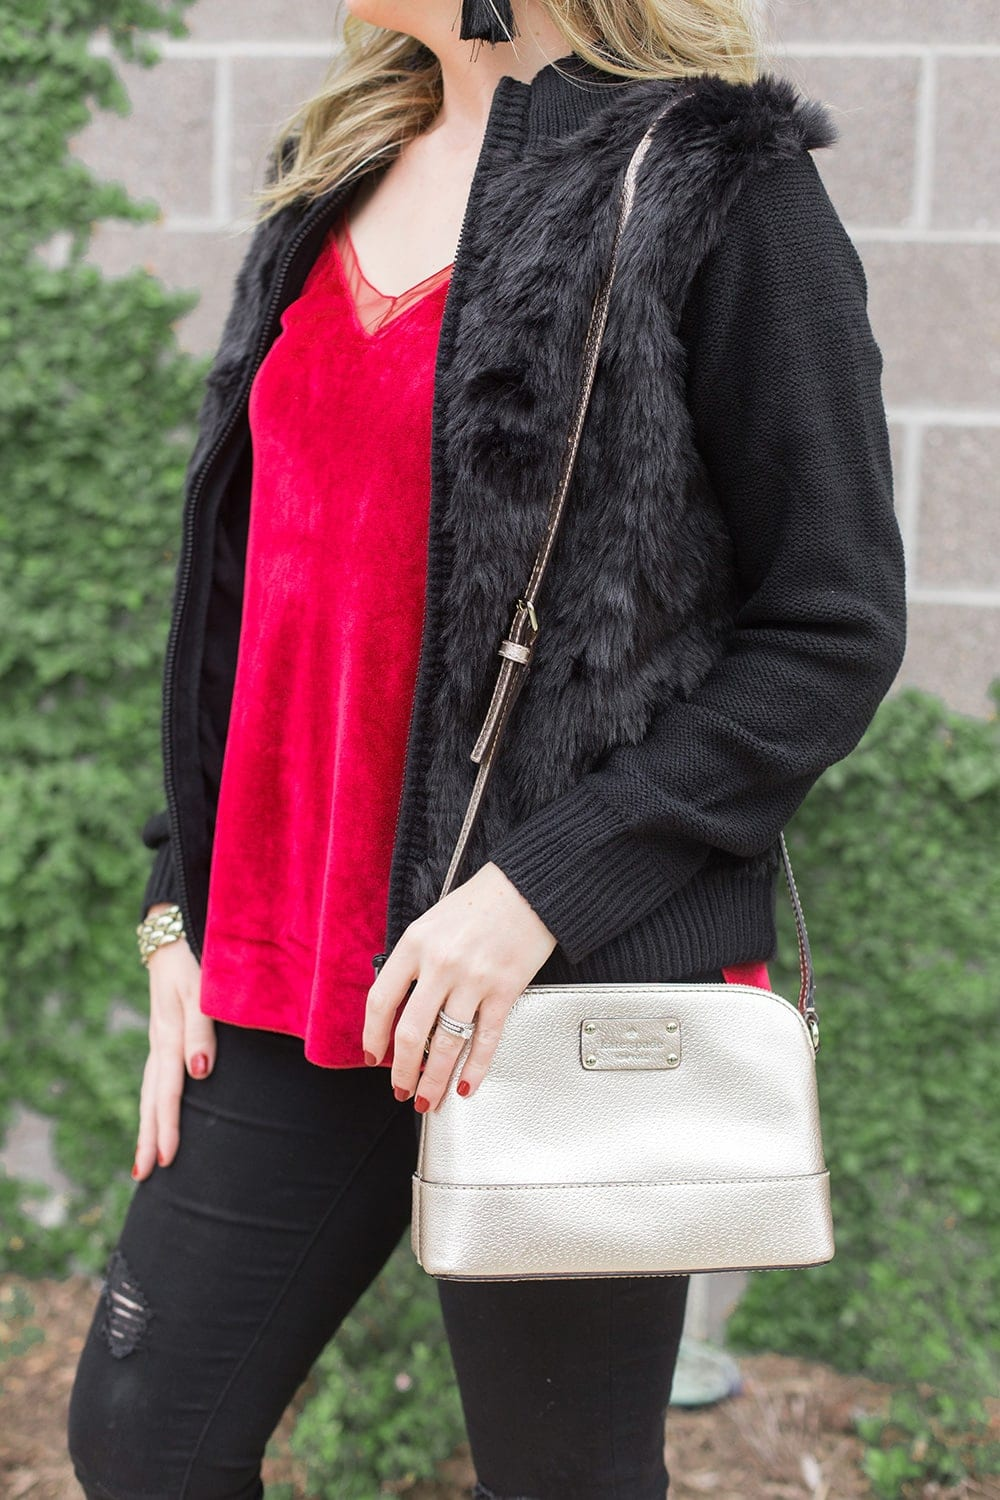 red and black holiday outfit idea